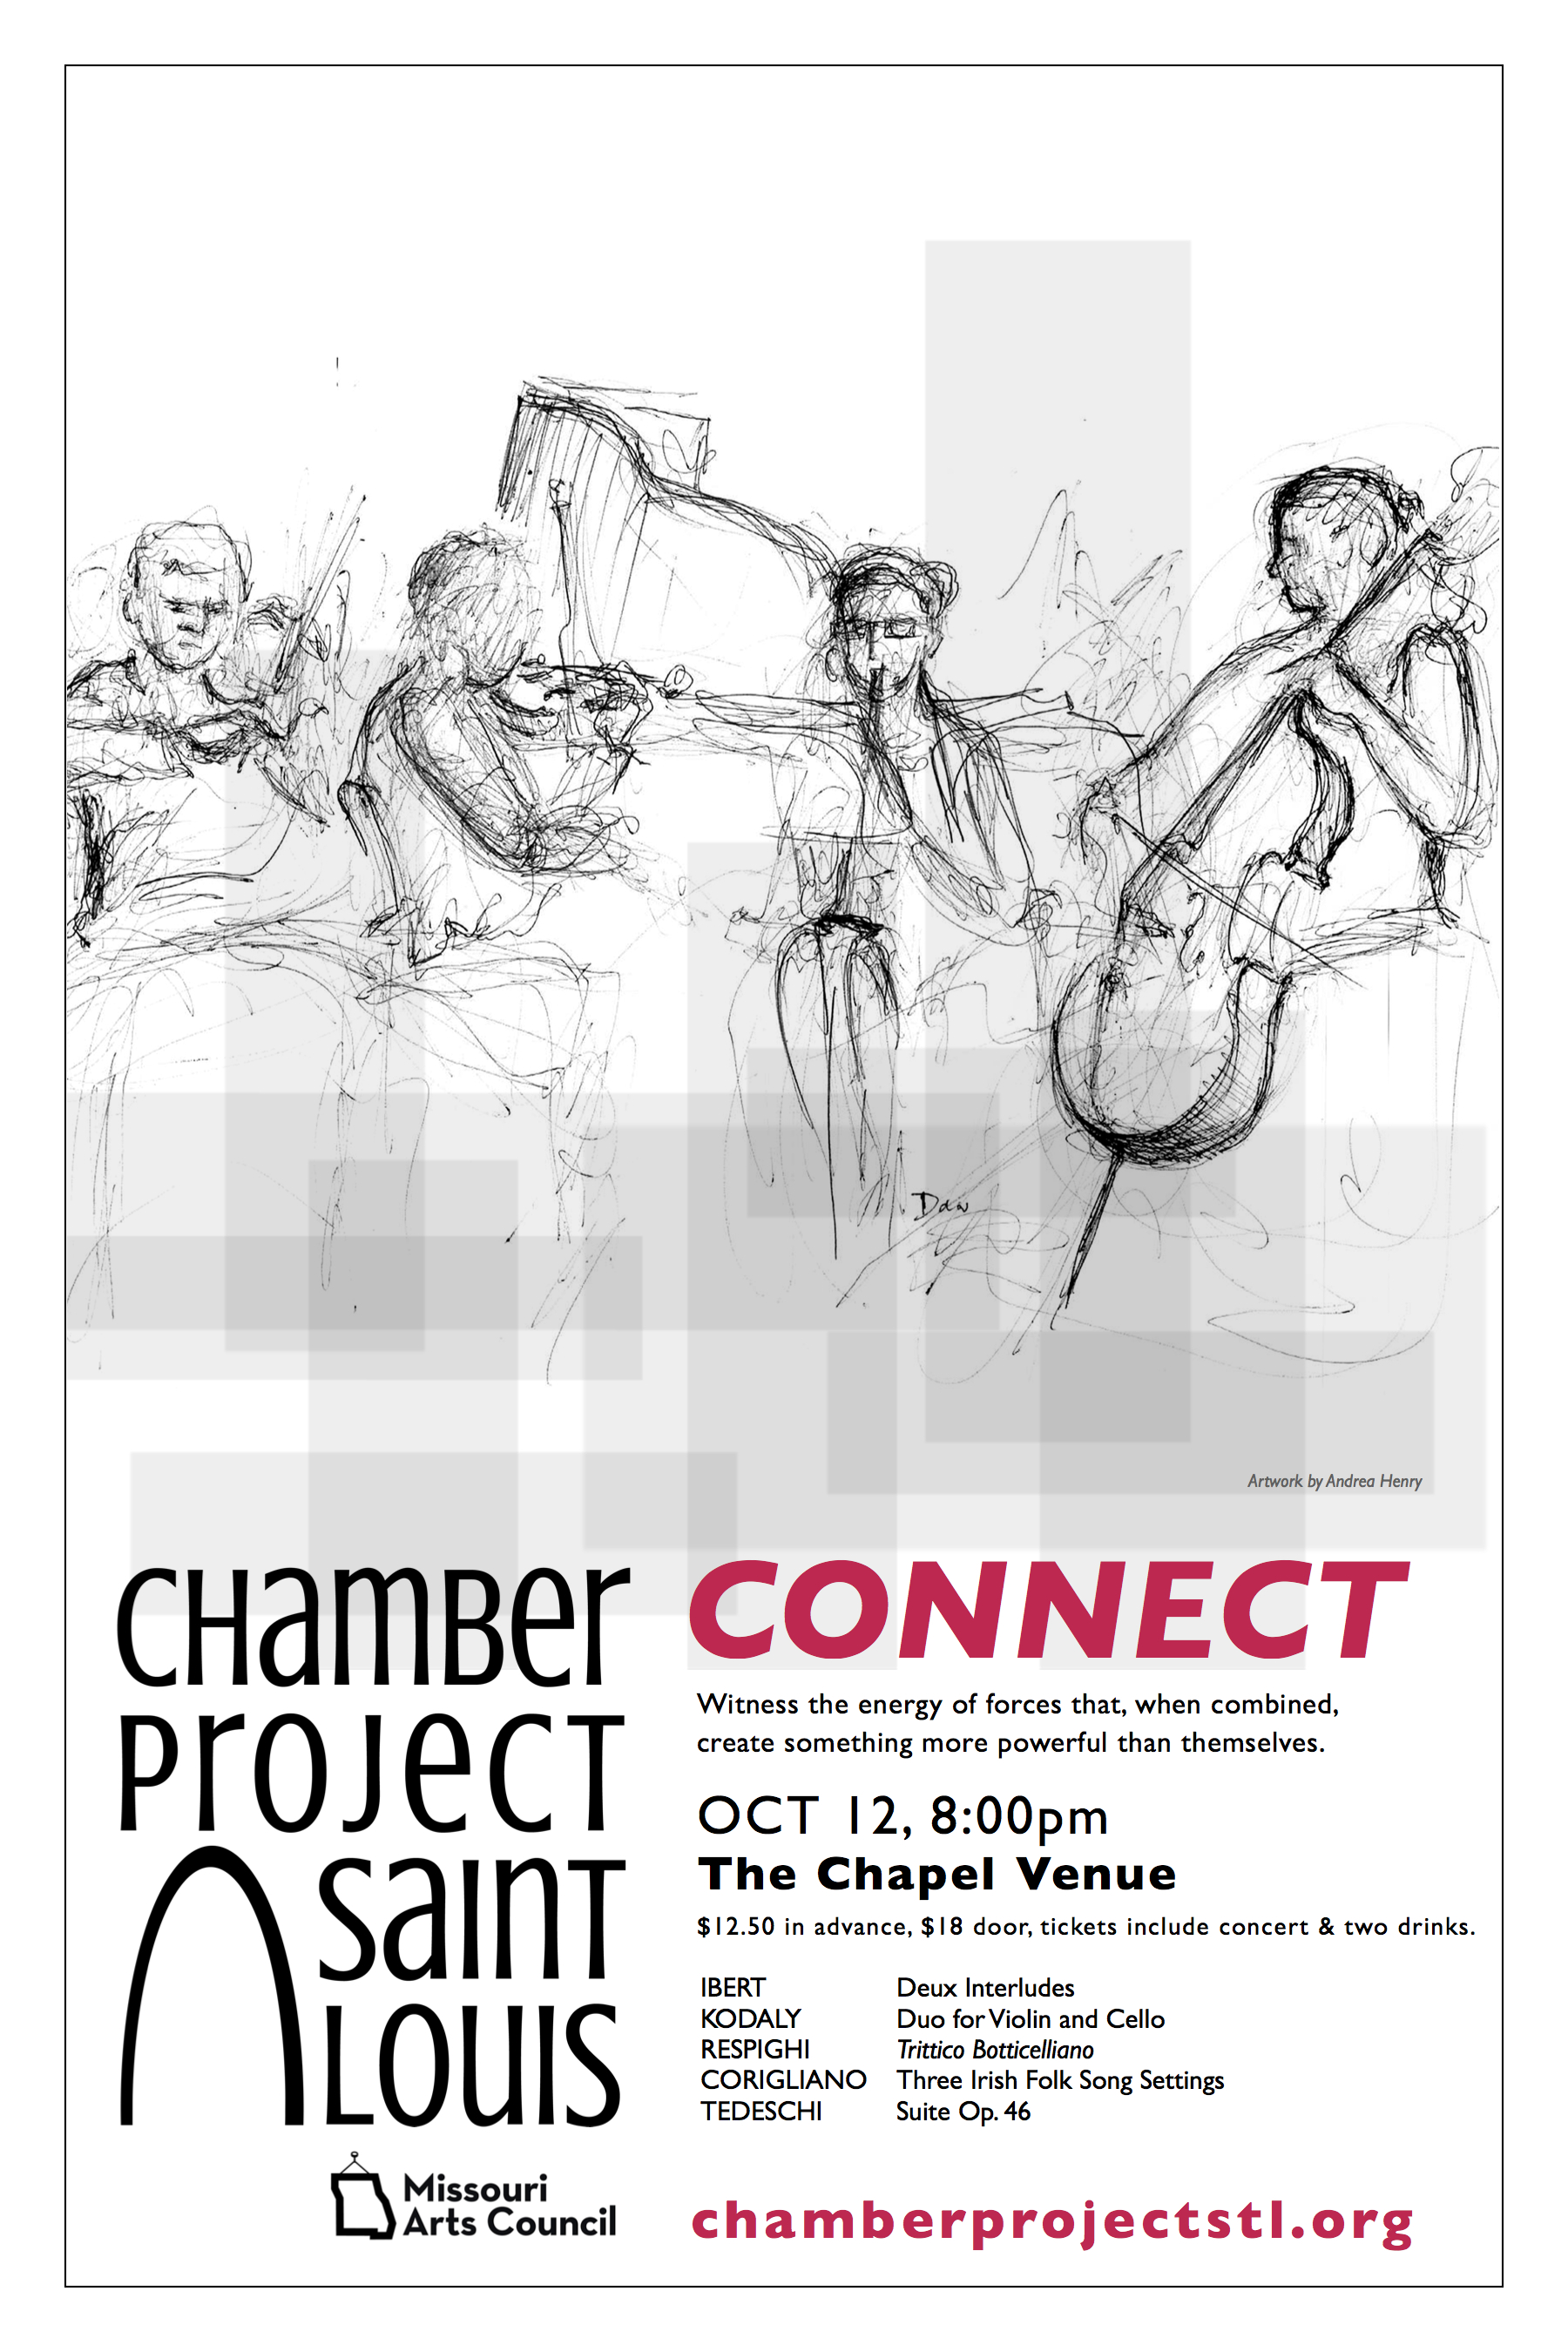 Artist Andrea Henry dropped into one of our rehearsals last month and did some sketching for us to use on our Connect poster. Making small connections with other artists in St. Louis builds our community and helps it thrive.